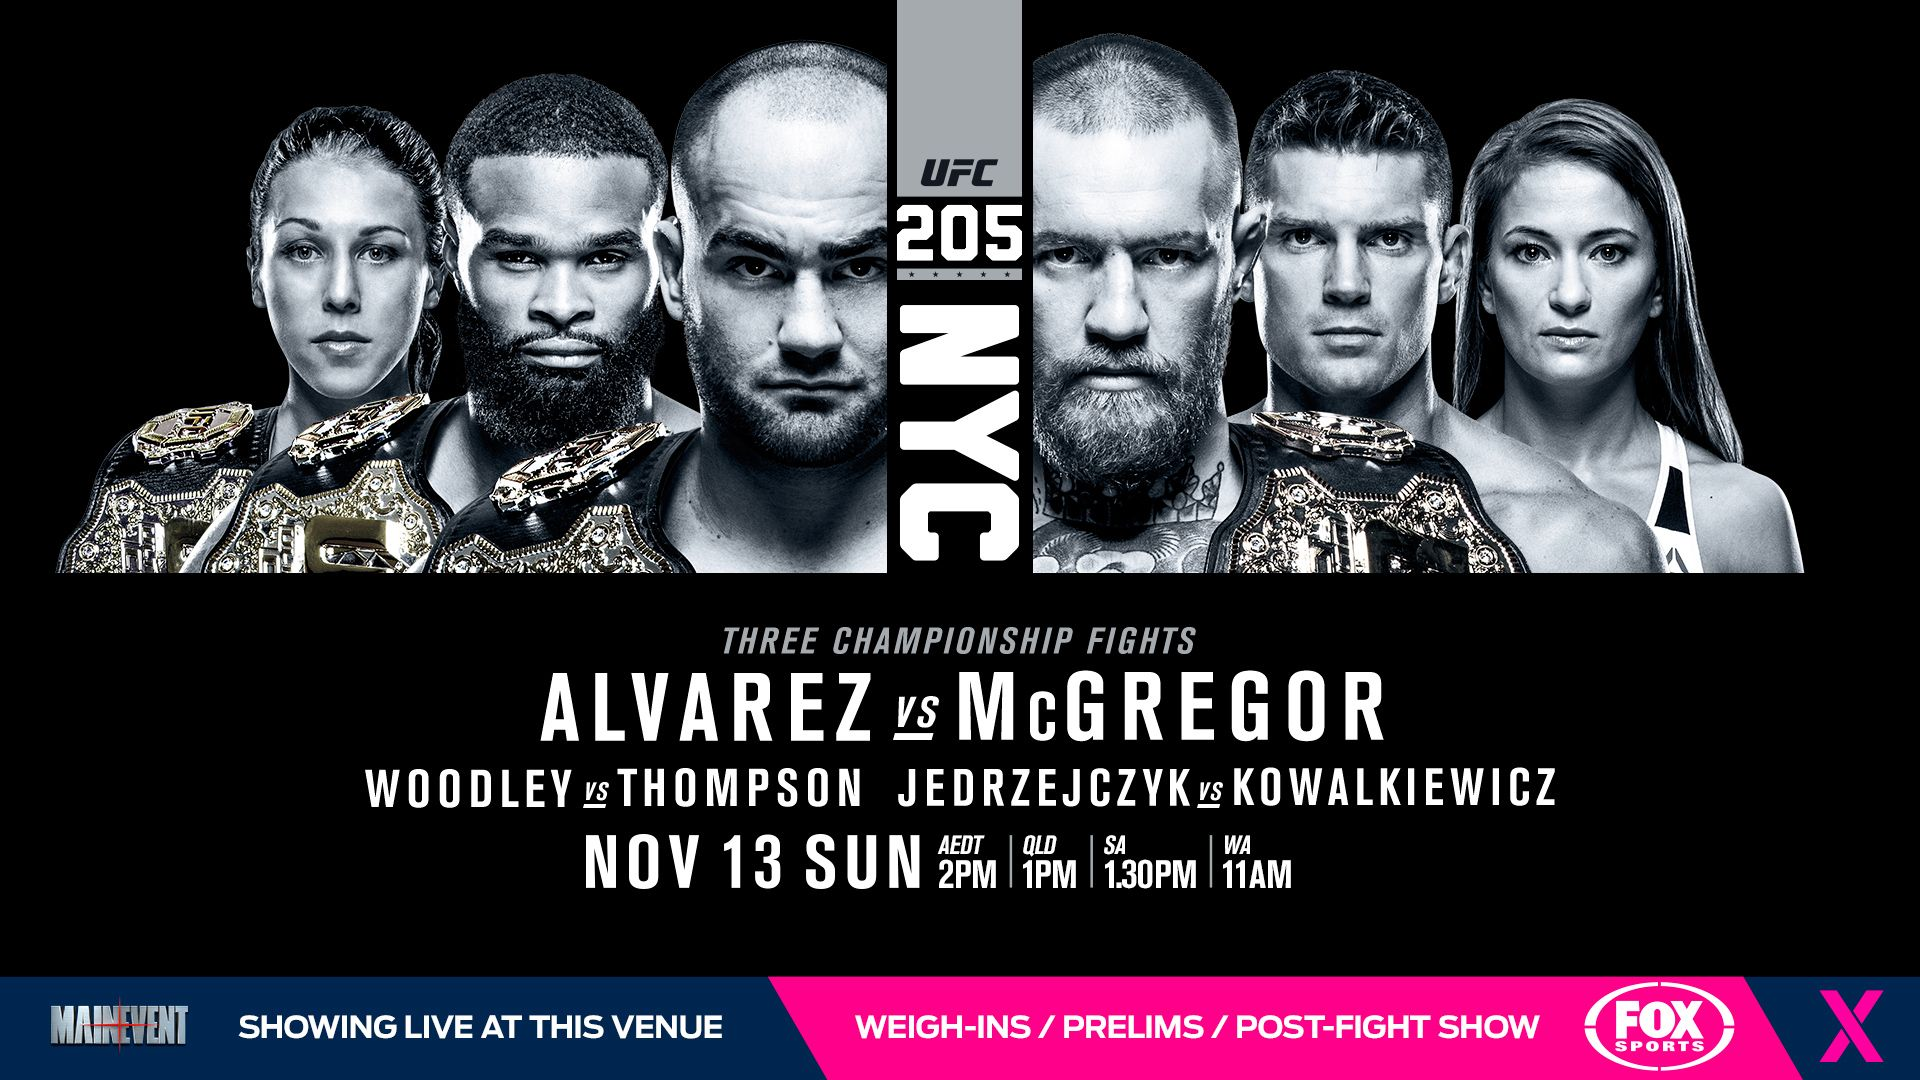 Wallpaper For Ufc 205 Ufc Fight Night Tv Channel